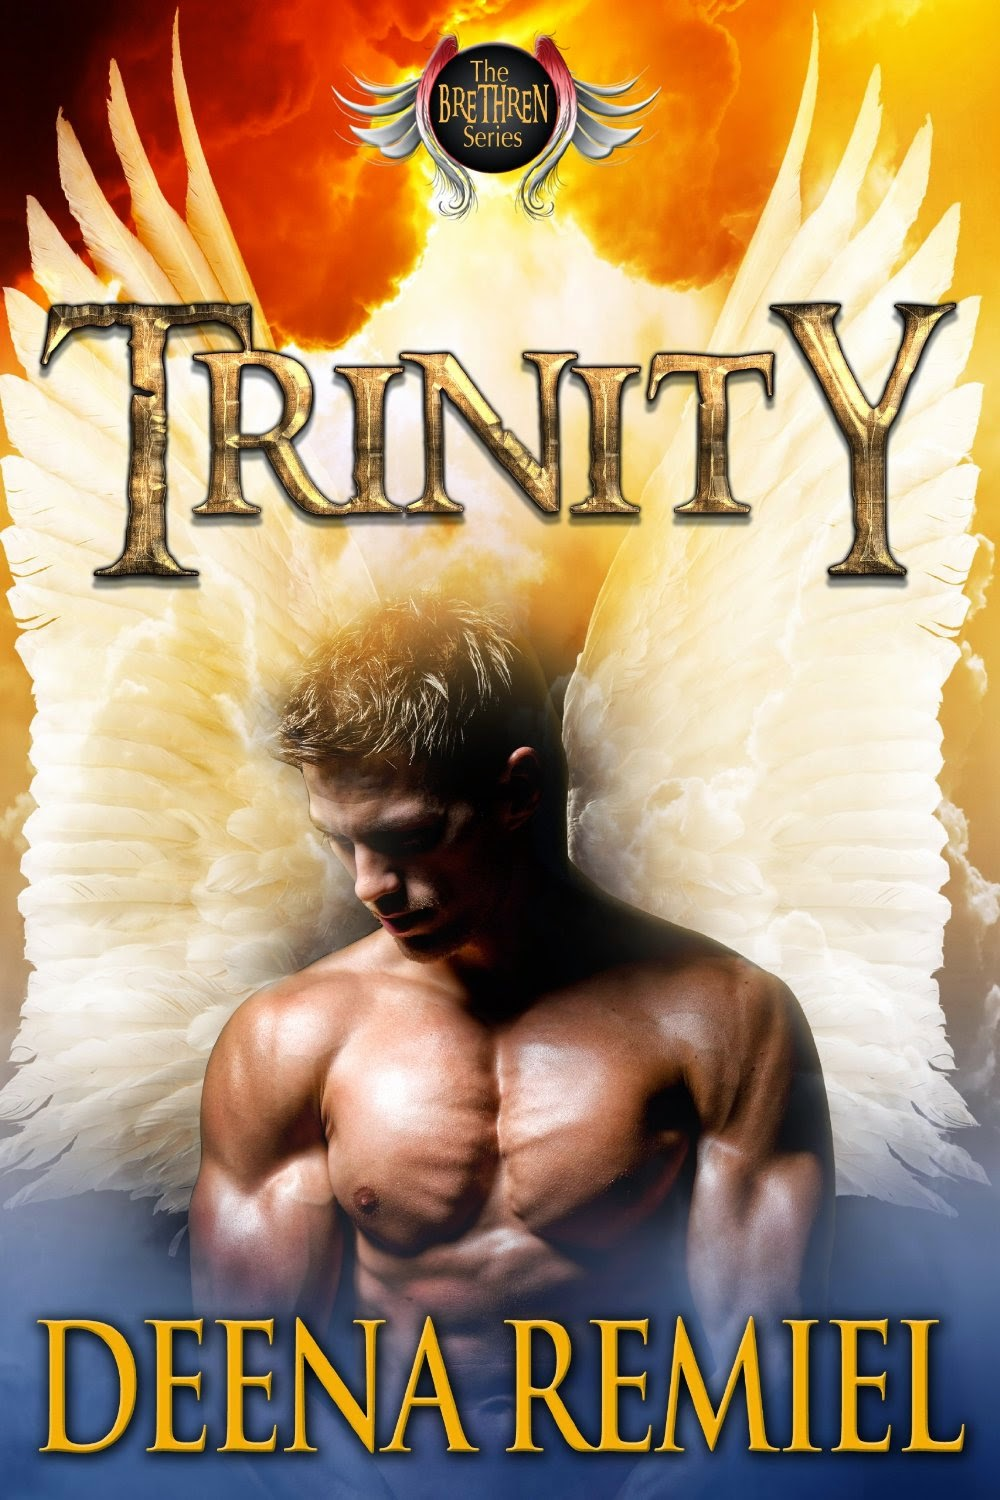 Trinity: A Brethren Novel (The Brethren) by Deena Remiel (PNR)